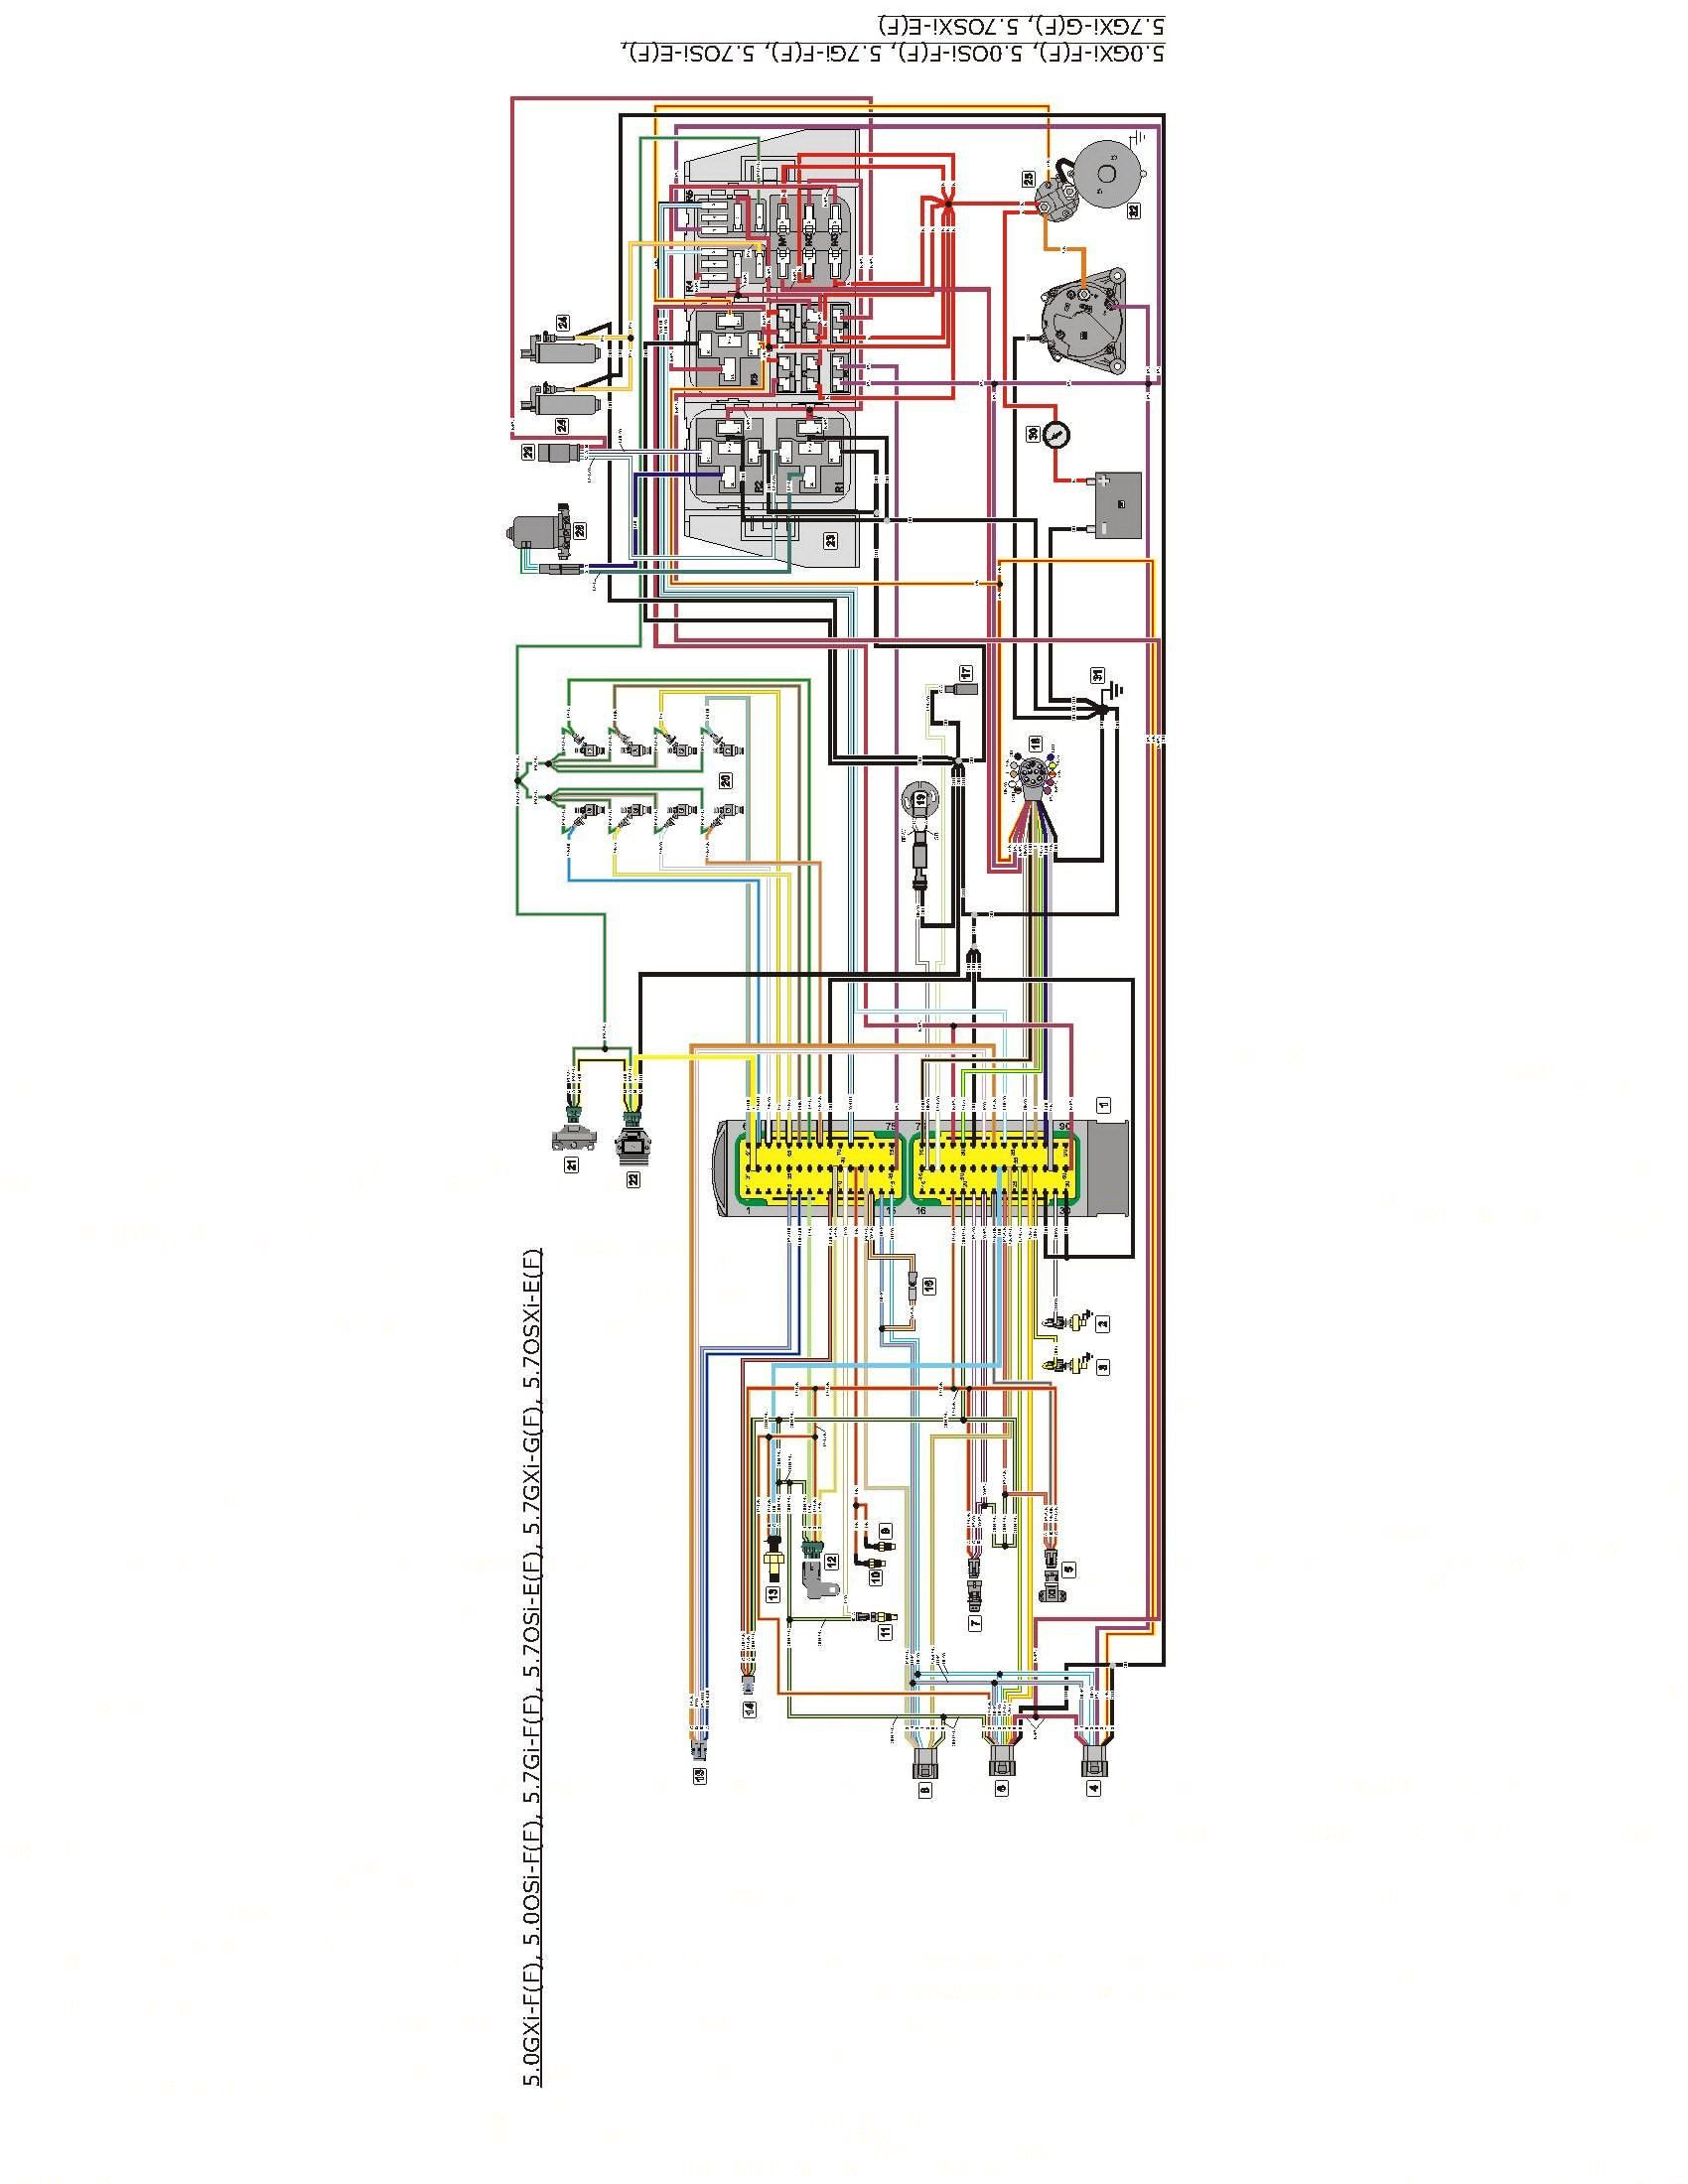 mercury outboard power trim wiring diagram lovely wiring diagram for volvo penta trim volvo penta trim motor volvo [ 1700 x 2200 Pixel ]